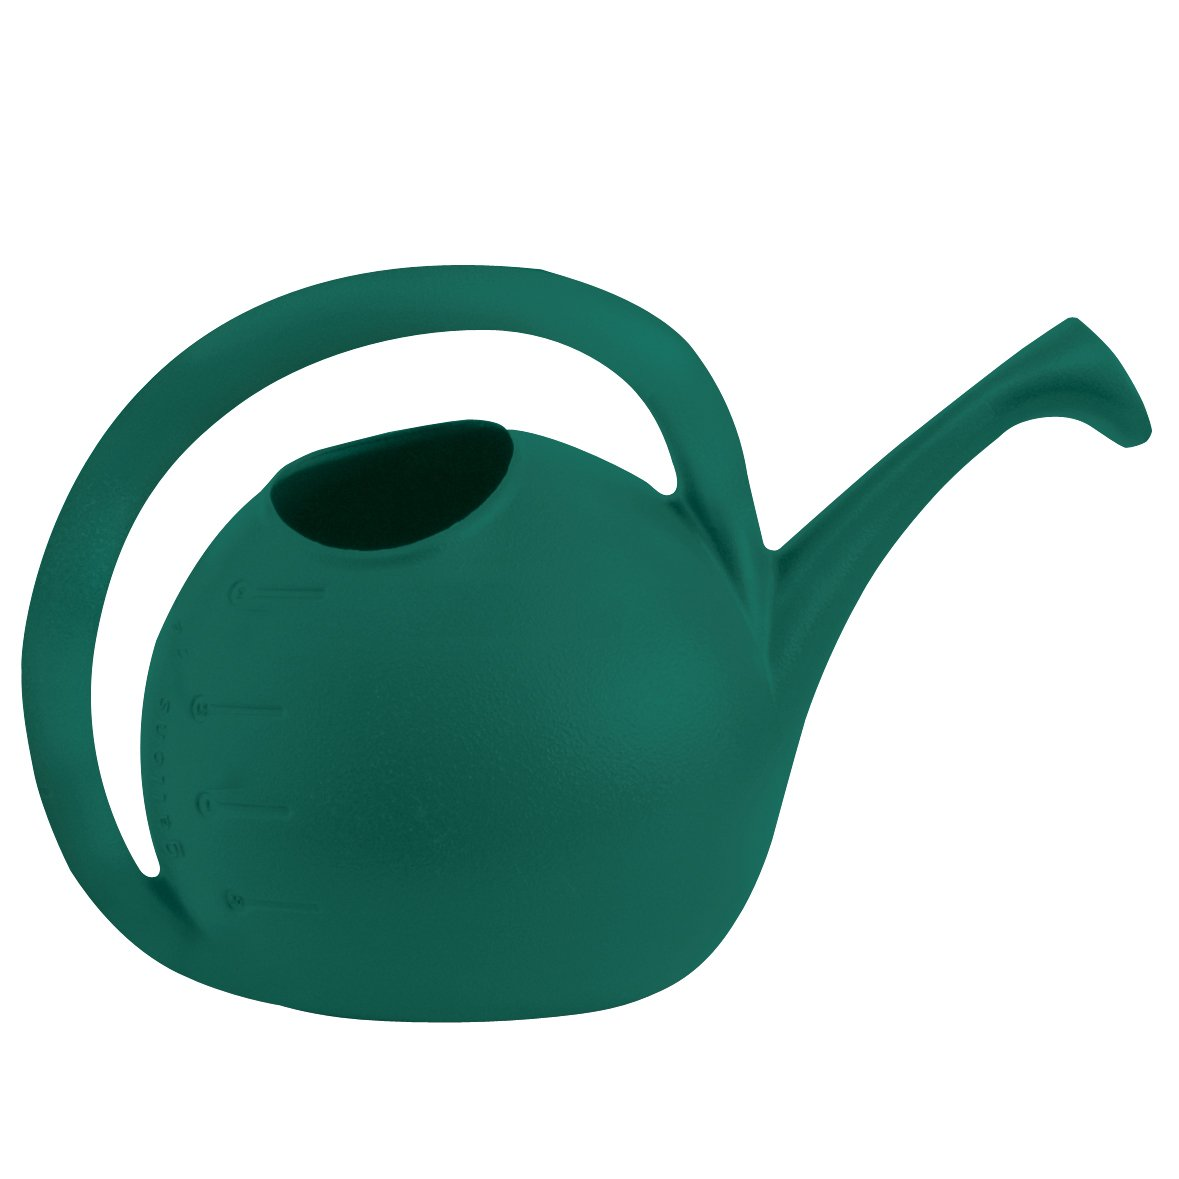 Myer Industries RZ.WC2G1B91 Akro Mils Value Watering Can, Green, 2 gallon